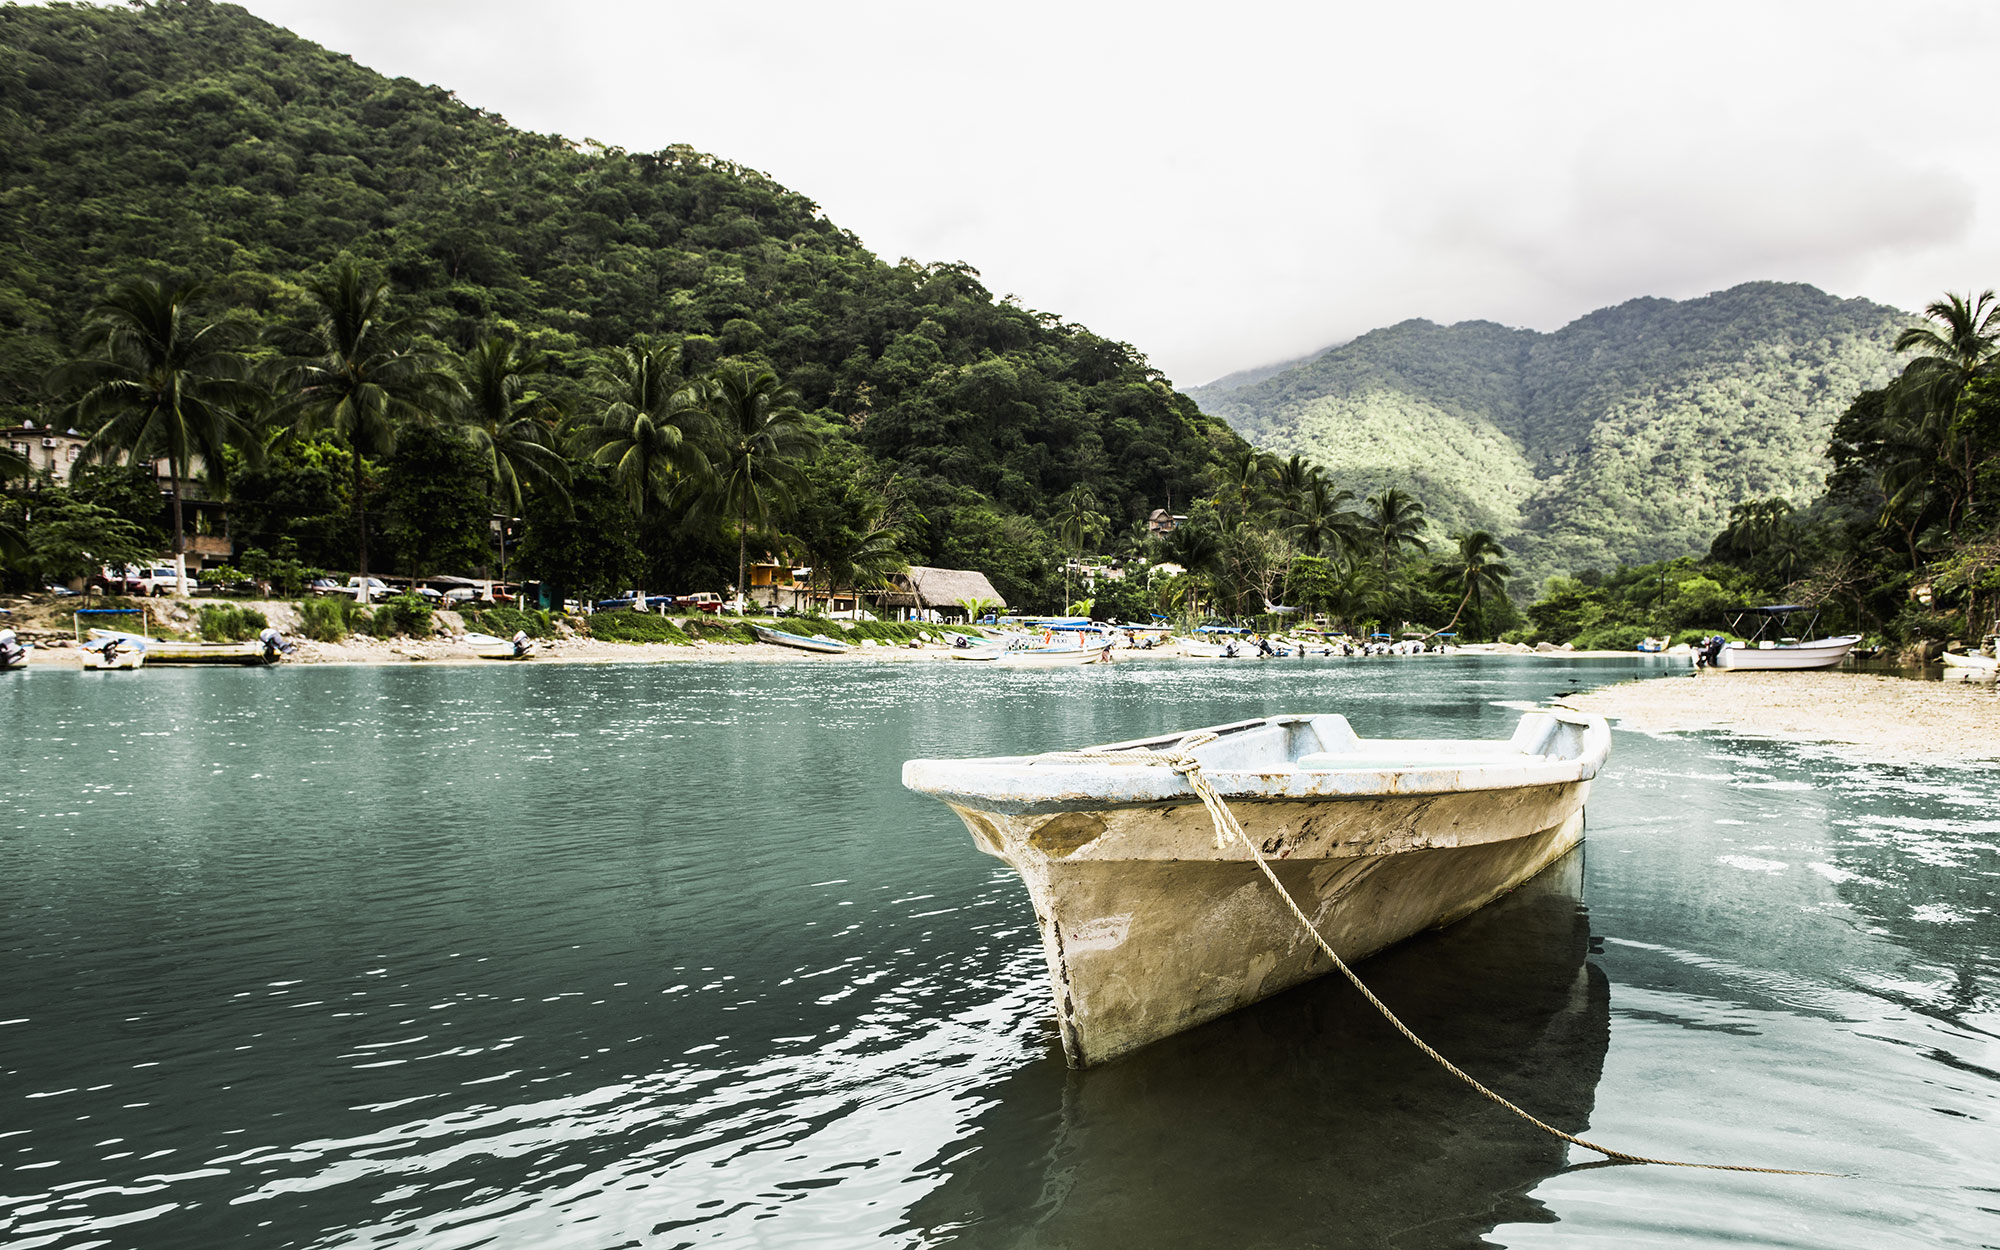 Docked boat floating in tropical bay